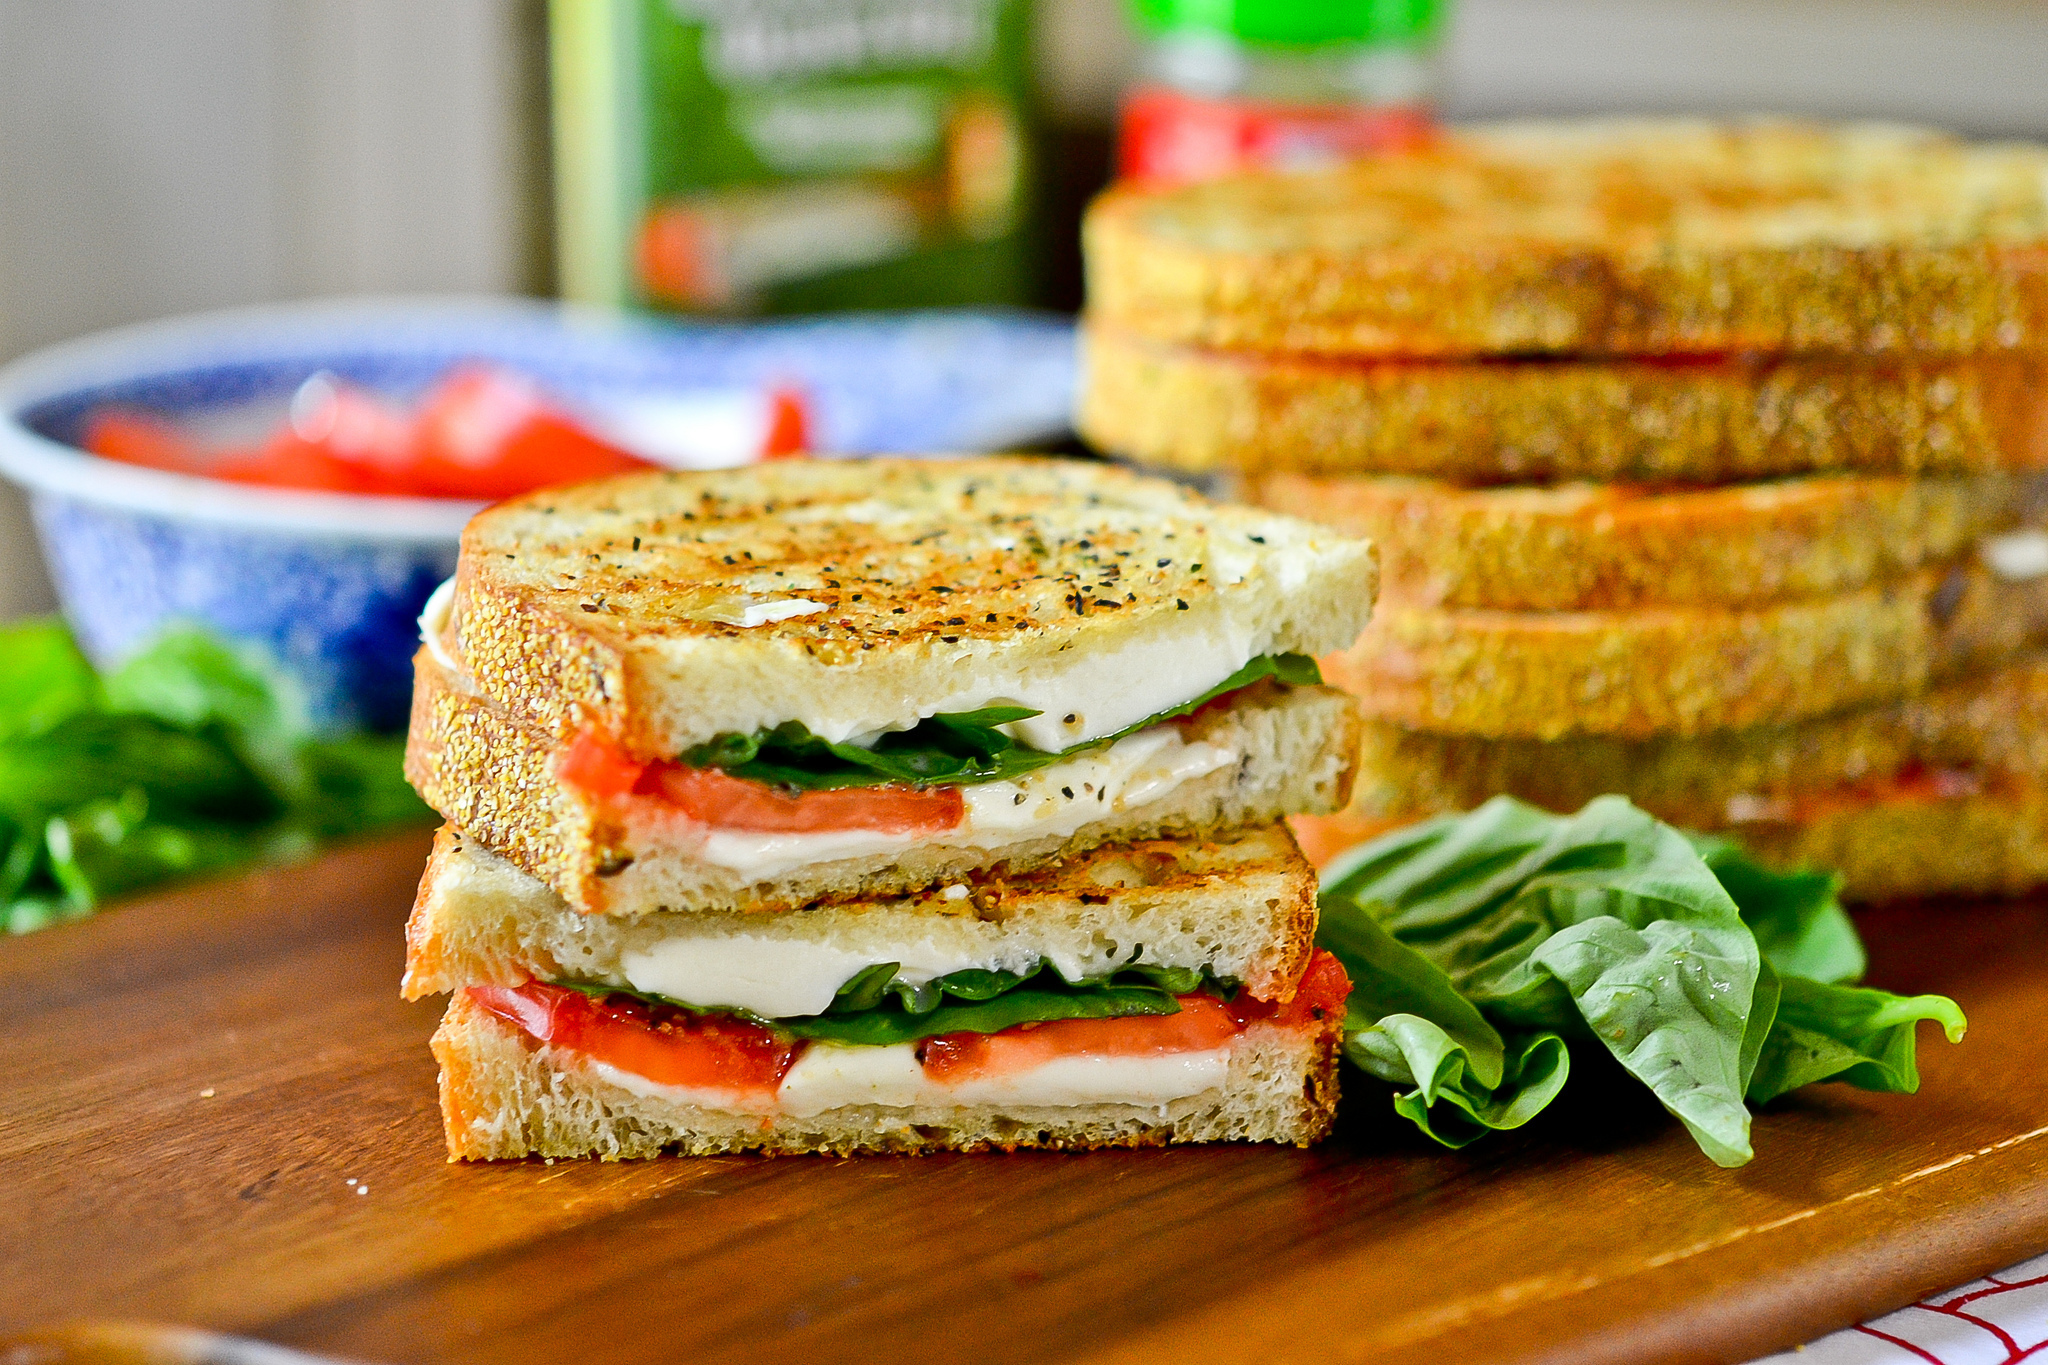 5337148-sandwich-food-wallpapers.jpg